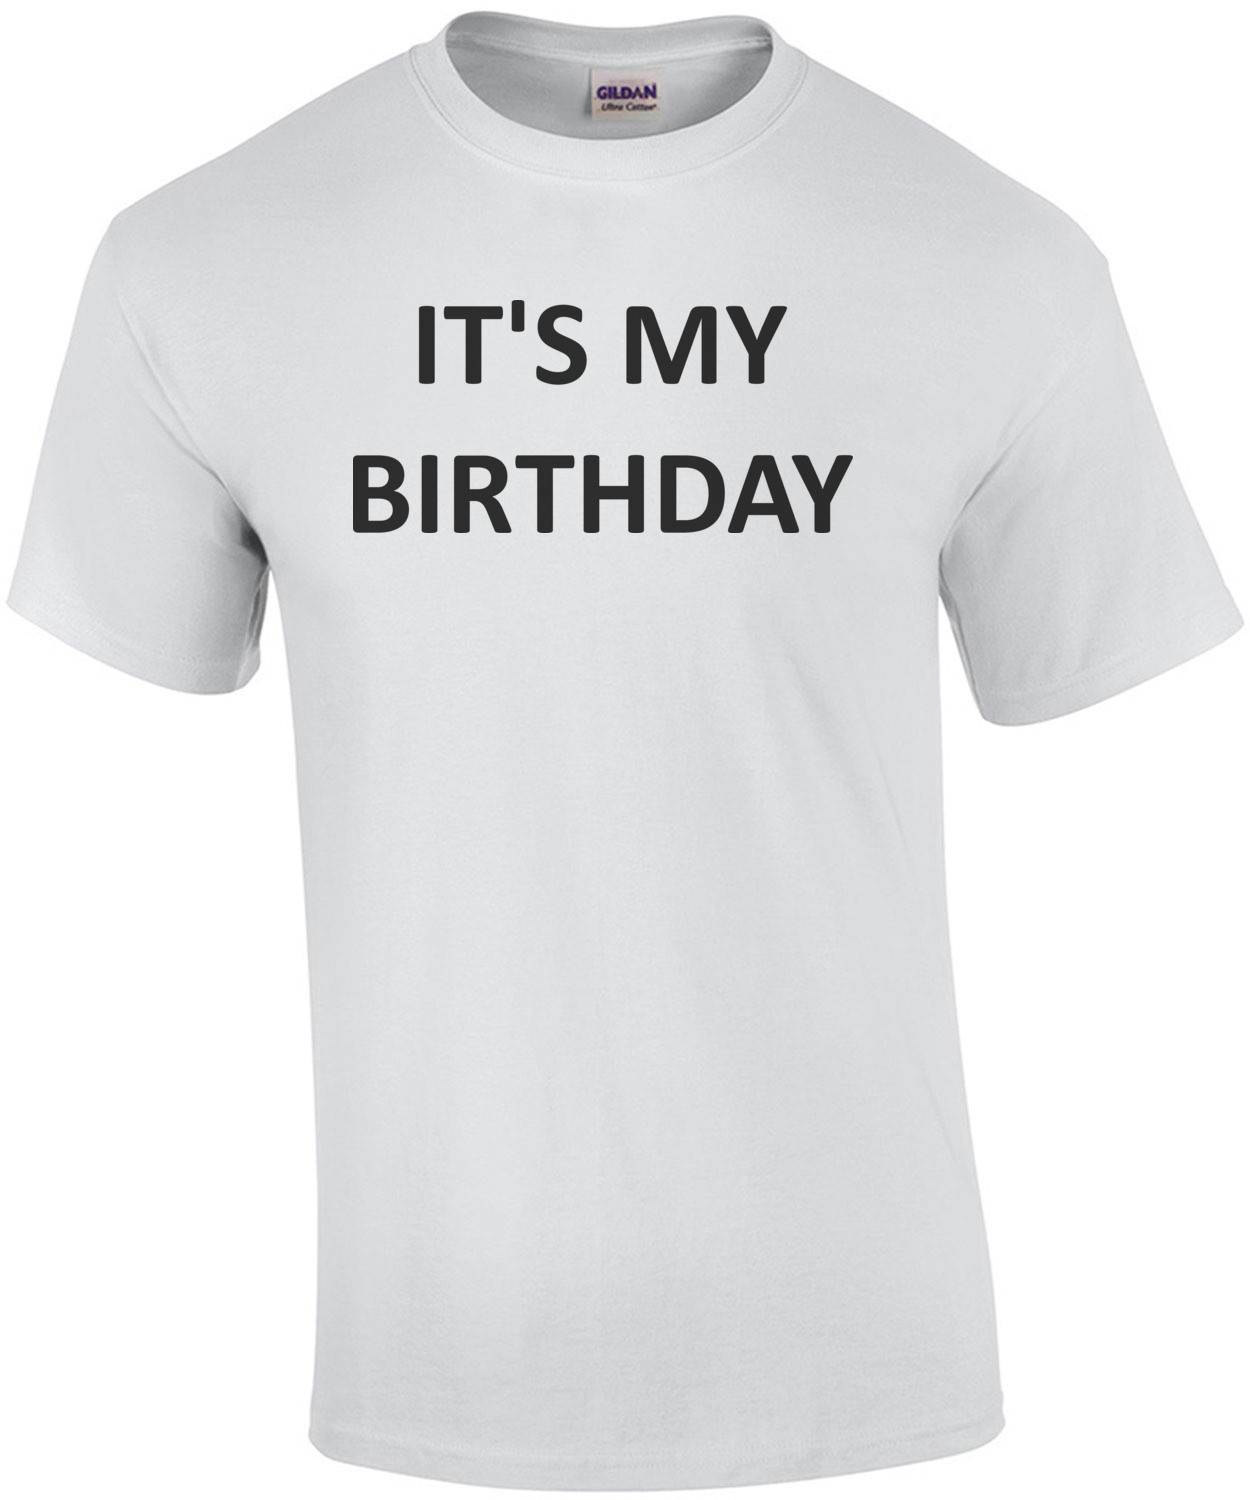 IT'S MY BIRTHDAY - Happy Birthday Shirt